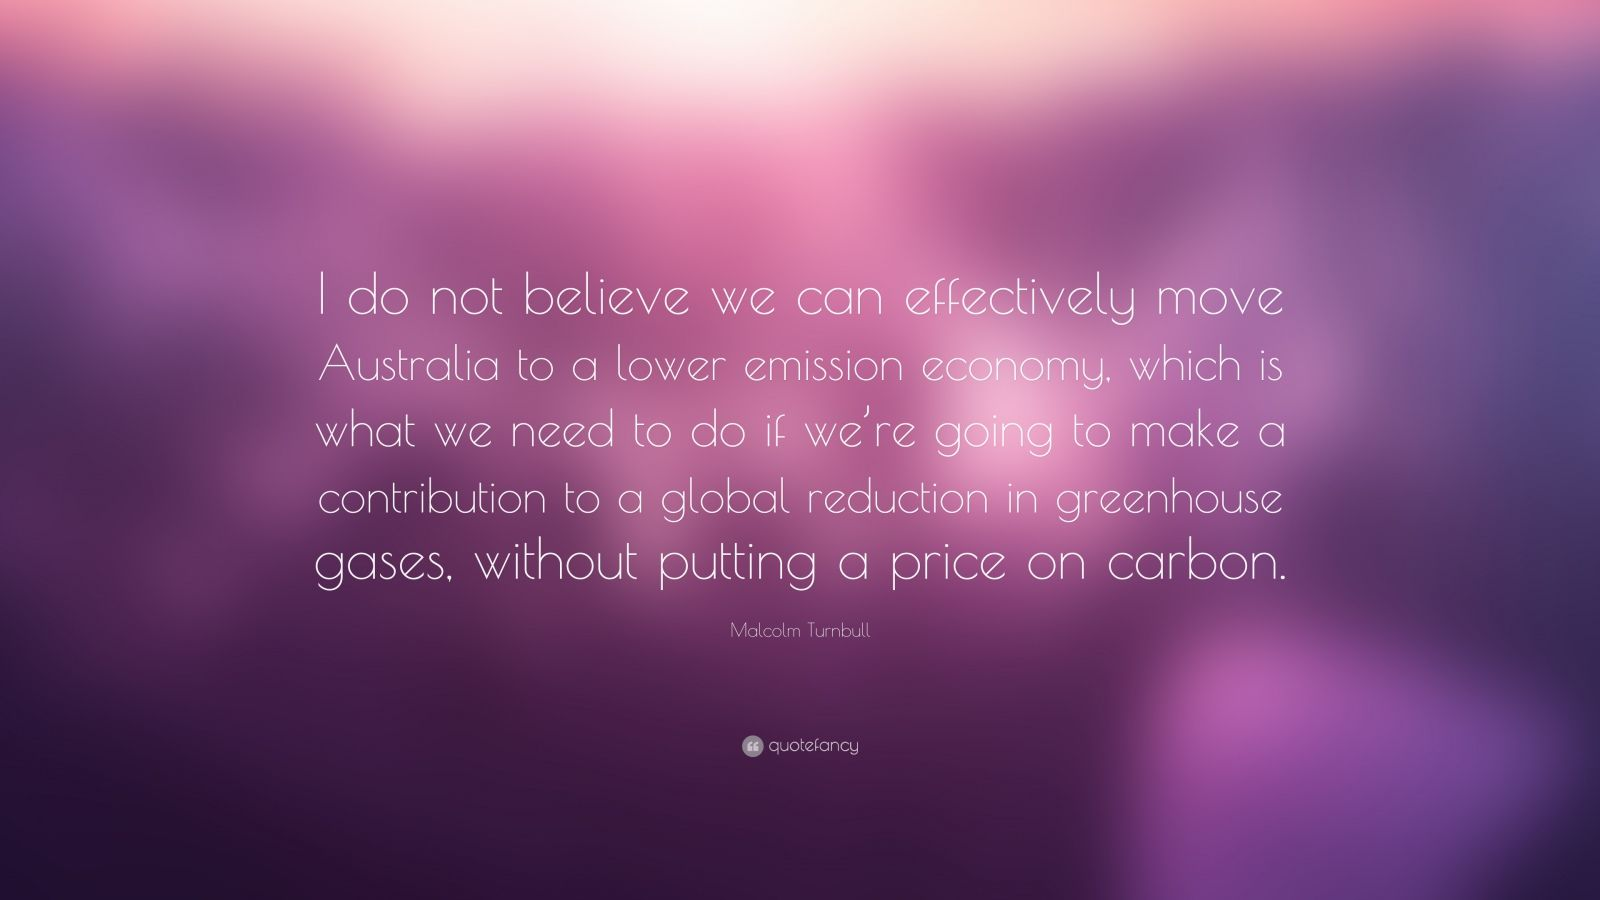 """Malcolm Turnbull Quote: """"I do not believe we can effectively move Australia to a lower emission economy, which is what we need to do if we're going to make a contribution to a global reduction in greenhouse gases, without putting a price on carbon."""""""